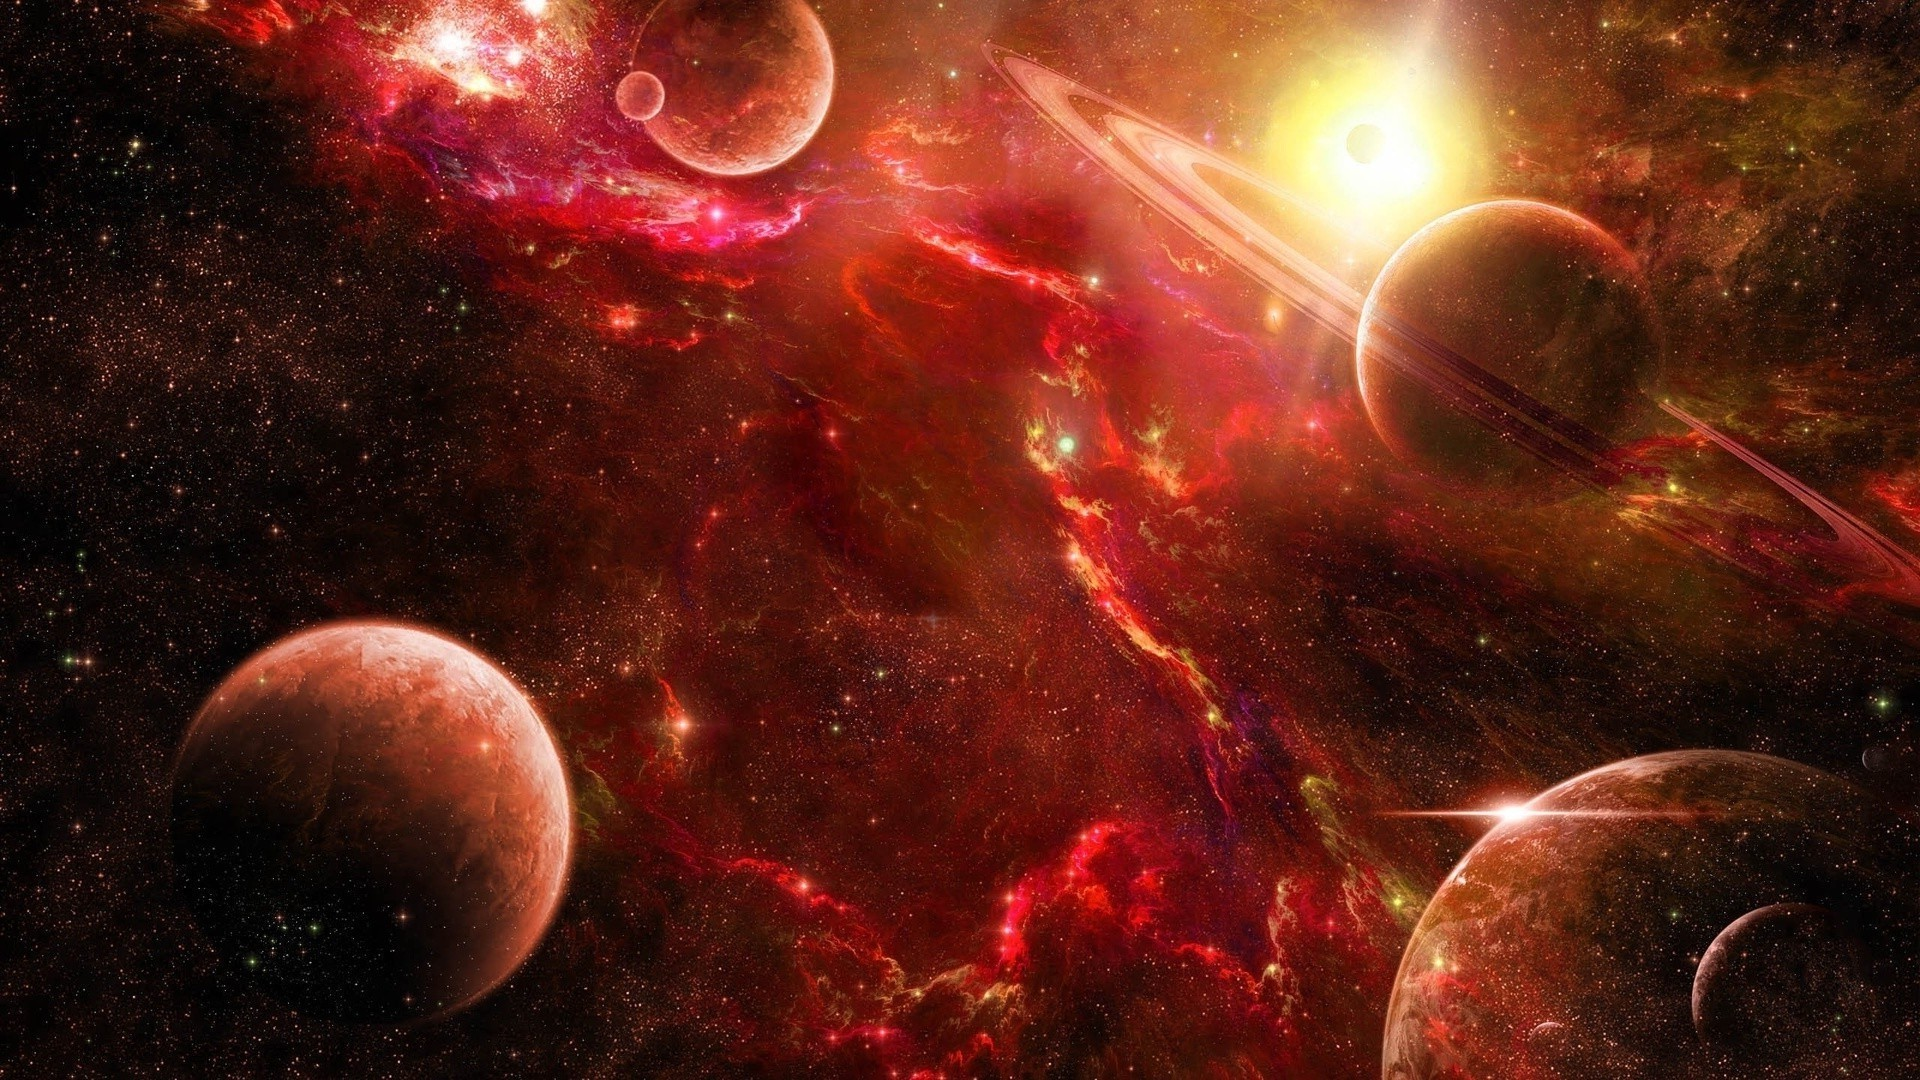 Red Space Image